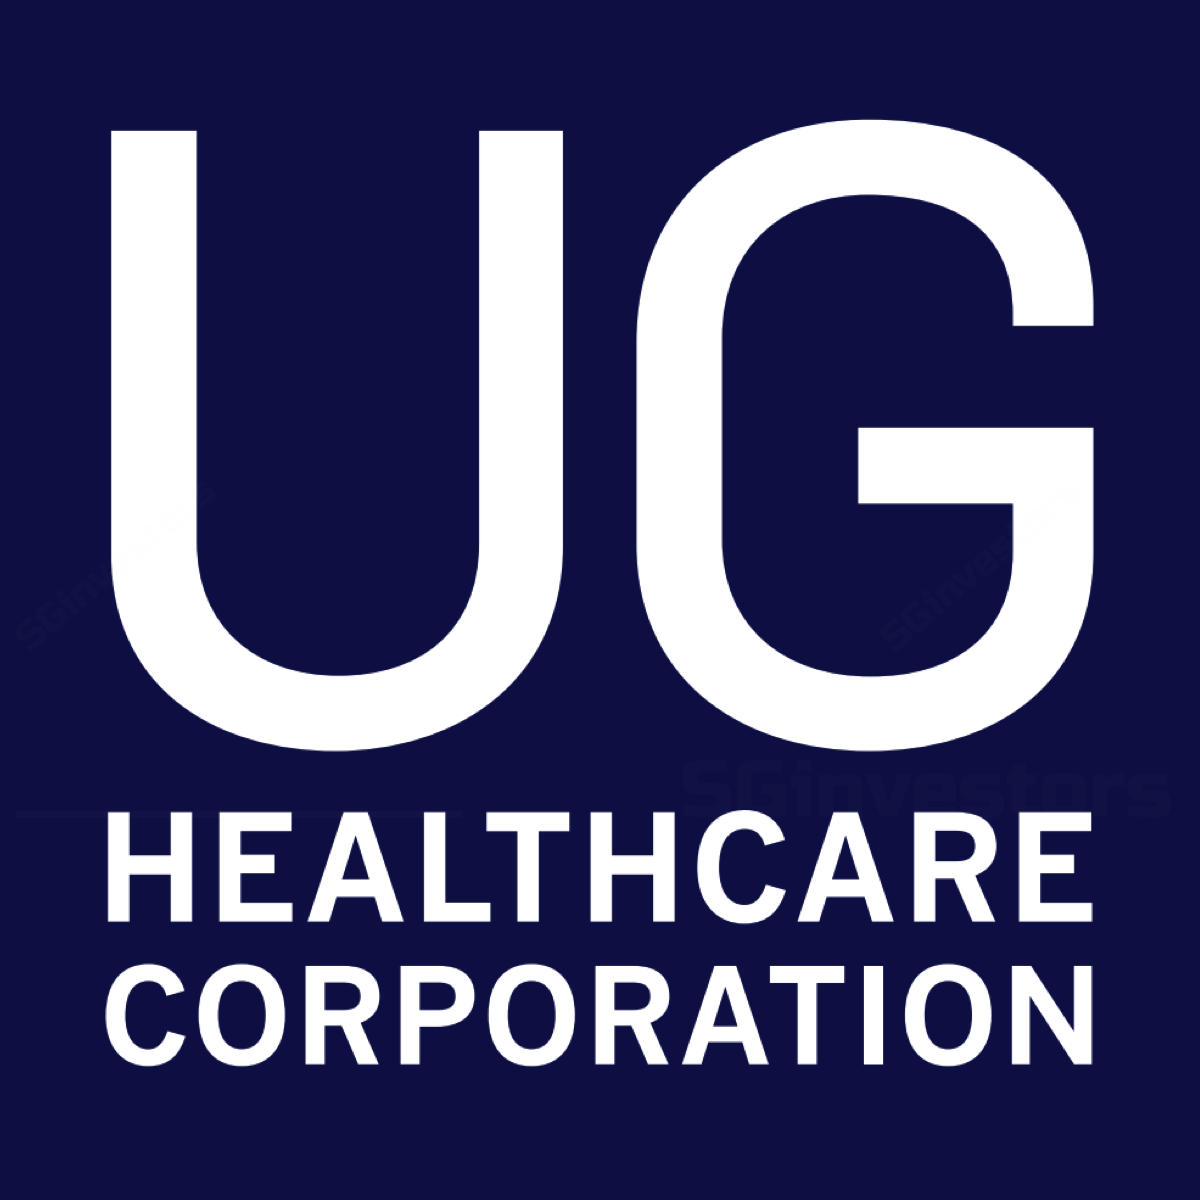 UG Healthcare (UGHC SP) - Maybank Kim Eng 2017-02-10: Missed on input costs and lacklustre outlook; D/G to SELL